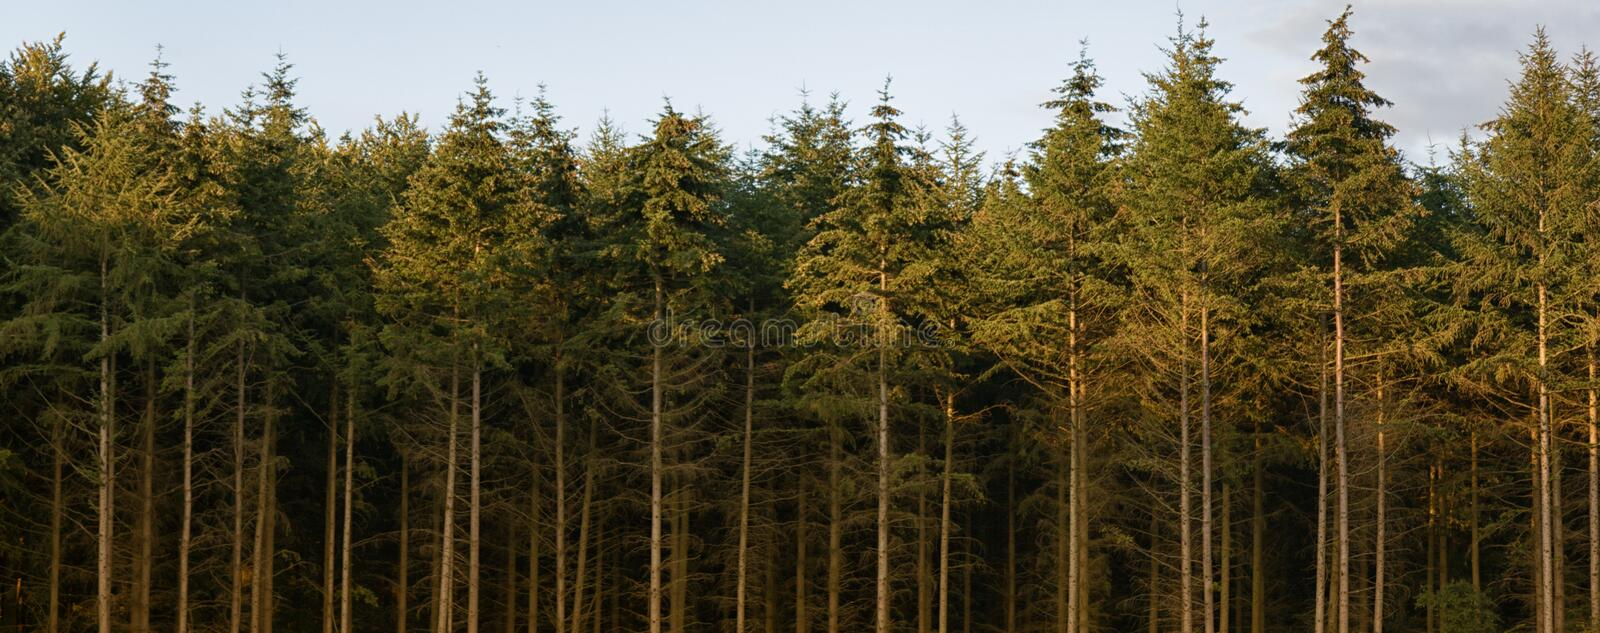 Line of pine trees stock images